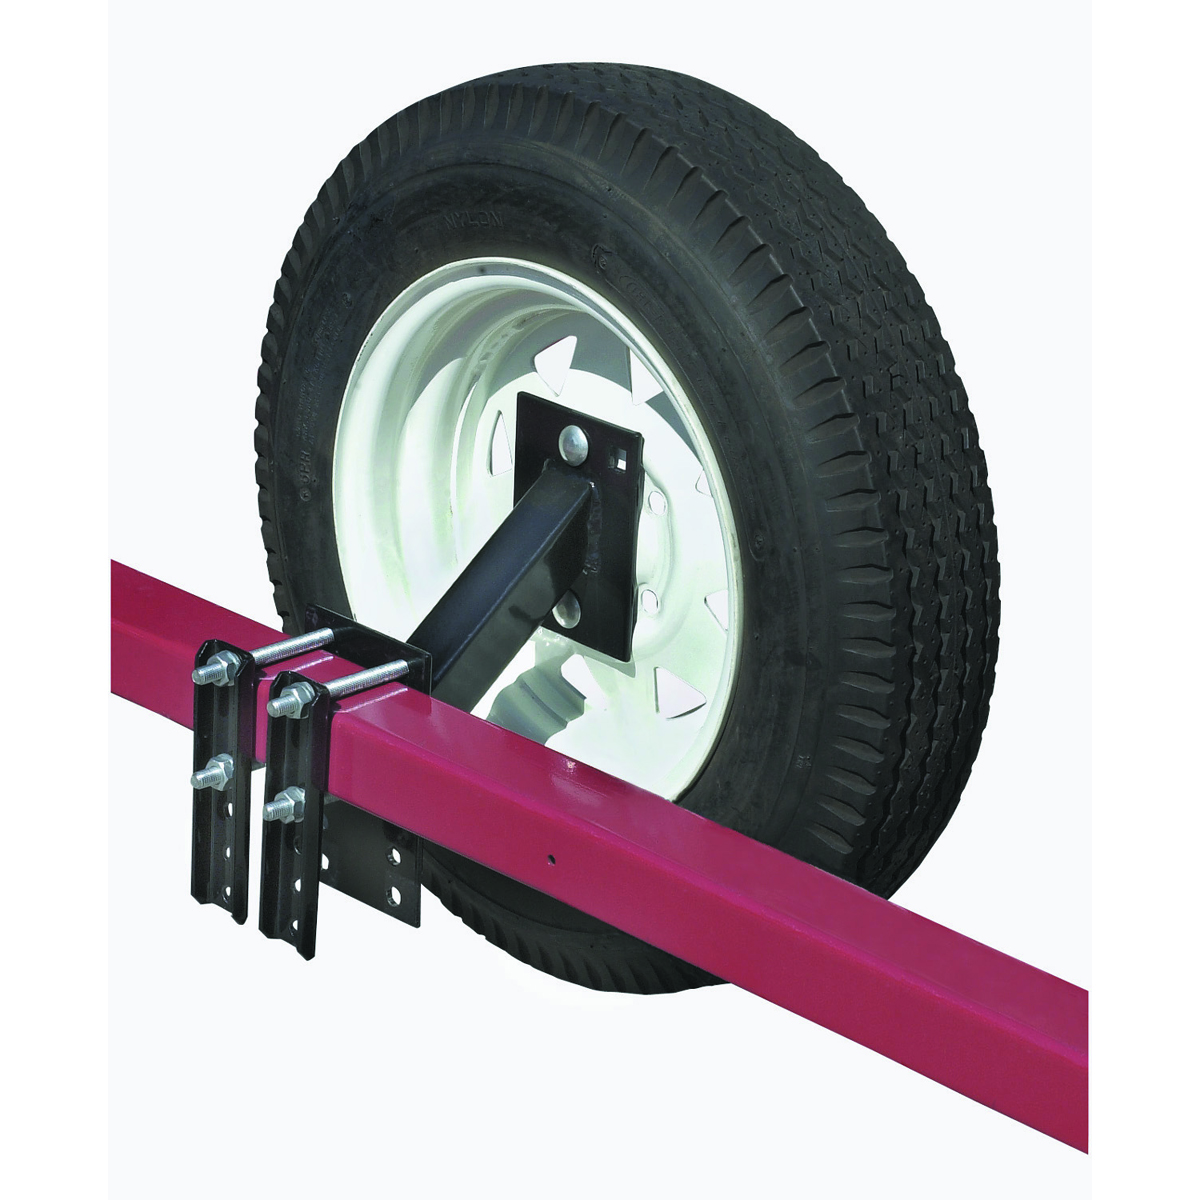 Trailer Spare Tire Carrier Save On This Spare Tire Carrier